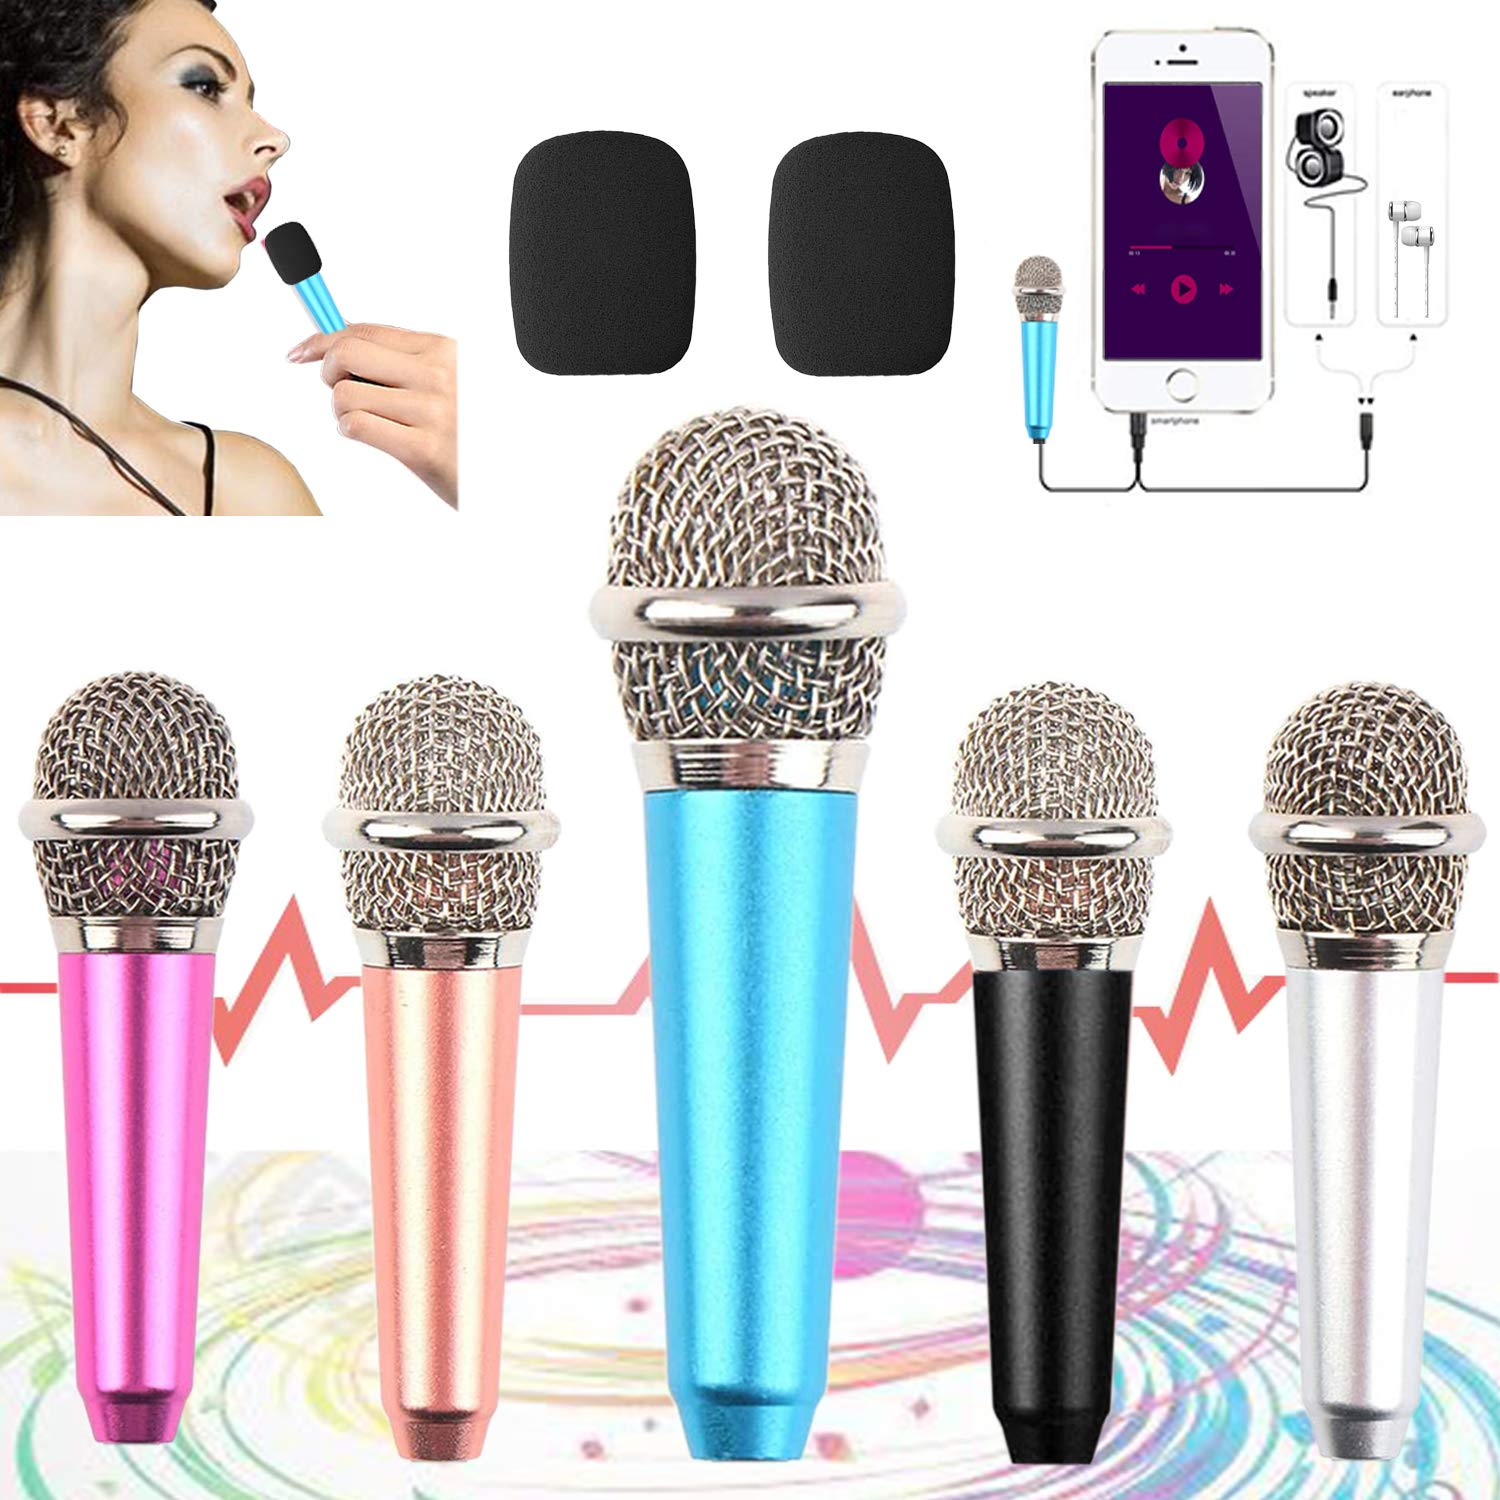 mini microphone for iphone,Tiny Microphone,Portable Microphone/mini mic,for Mobile Phone, Computer, Tablet, Recording Chat and Singing,with Mic Stand and 2PCS sponge foam cover (Blue)